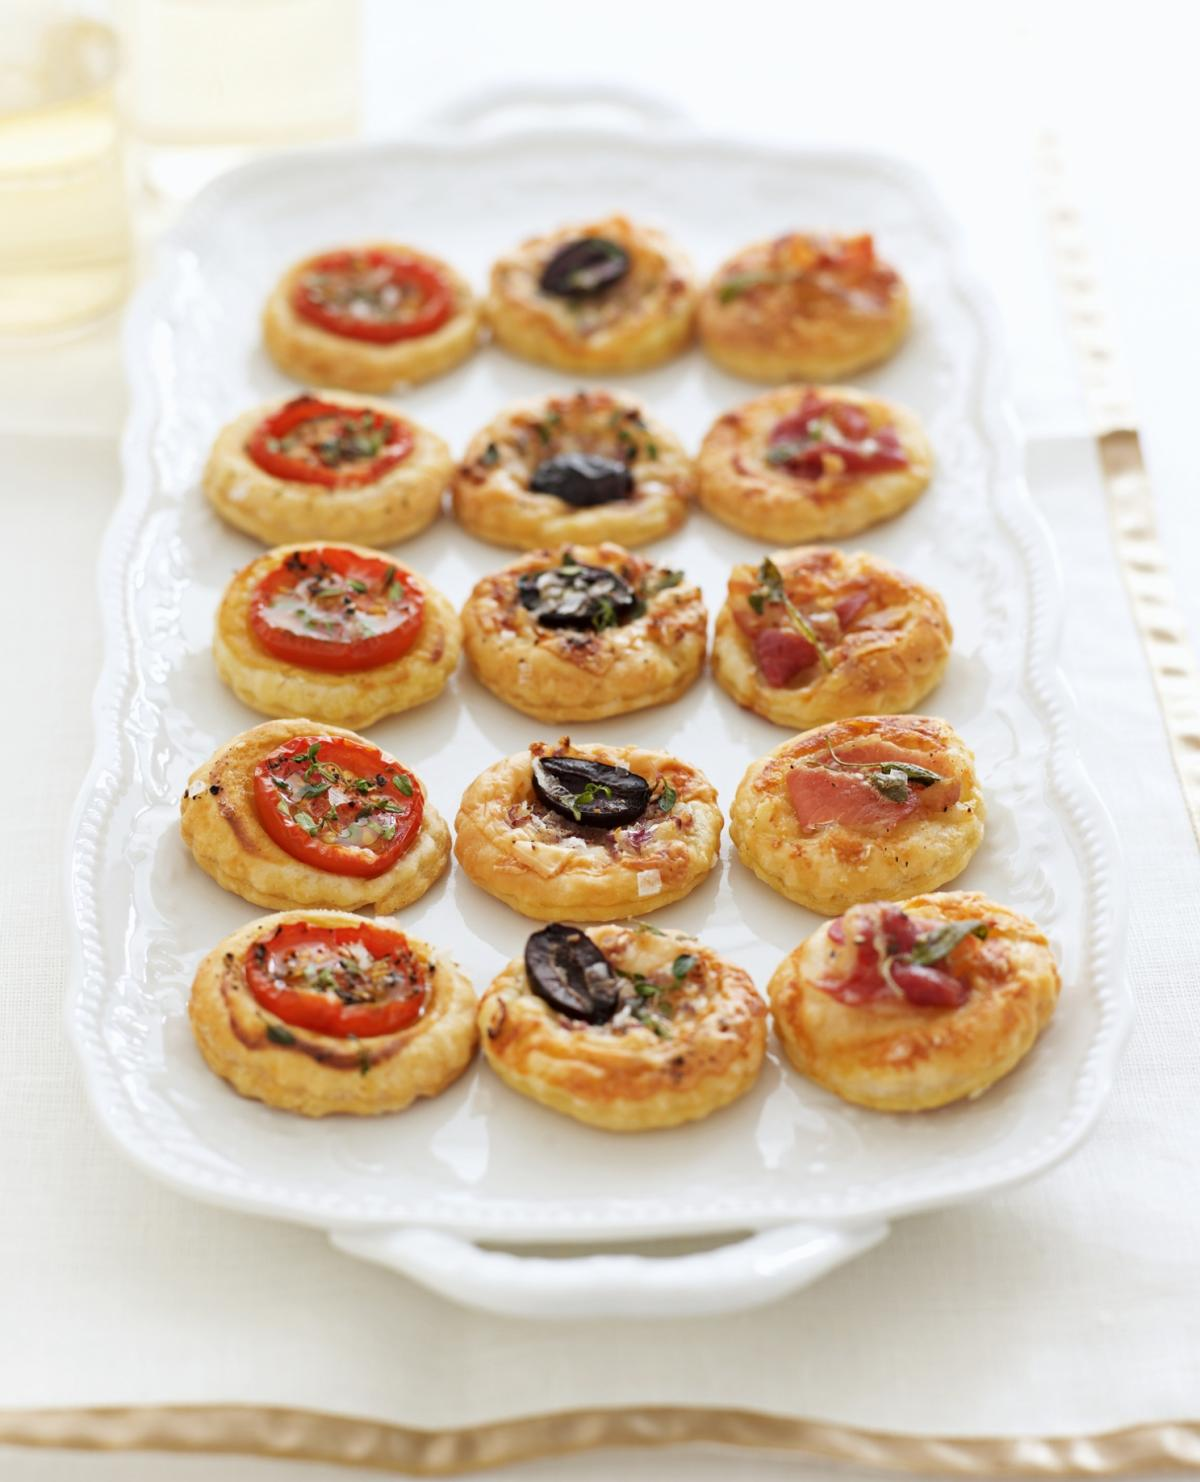 A picture of Delia's Quiches, and Tarts recipes